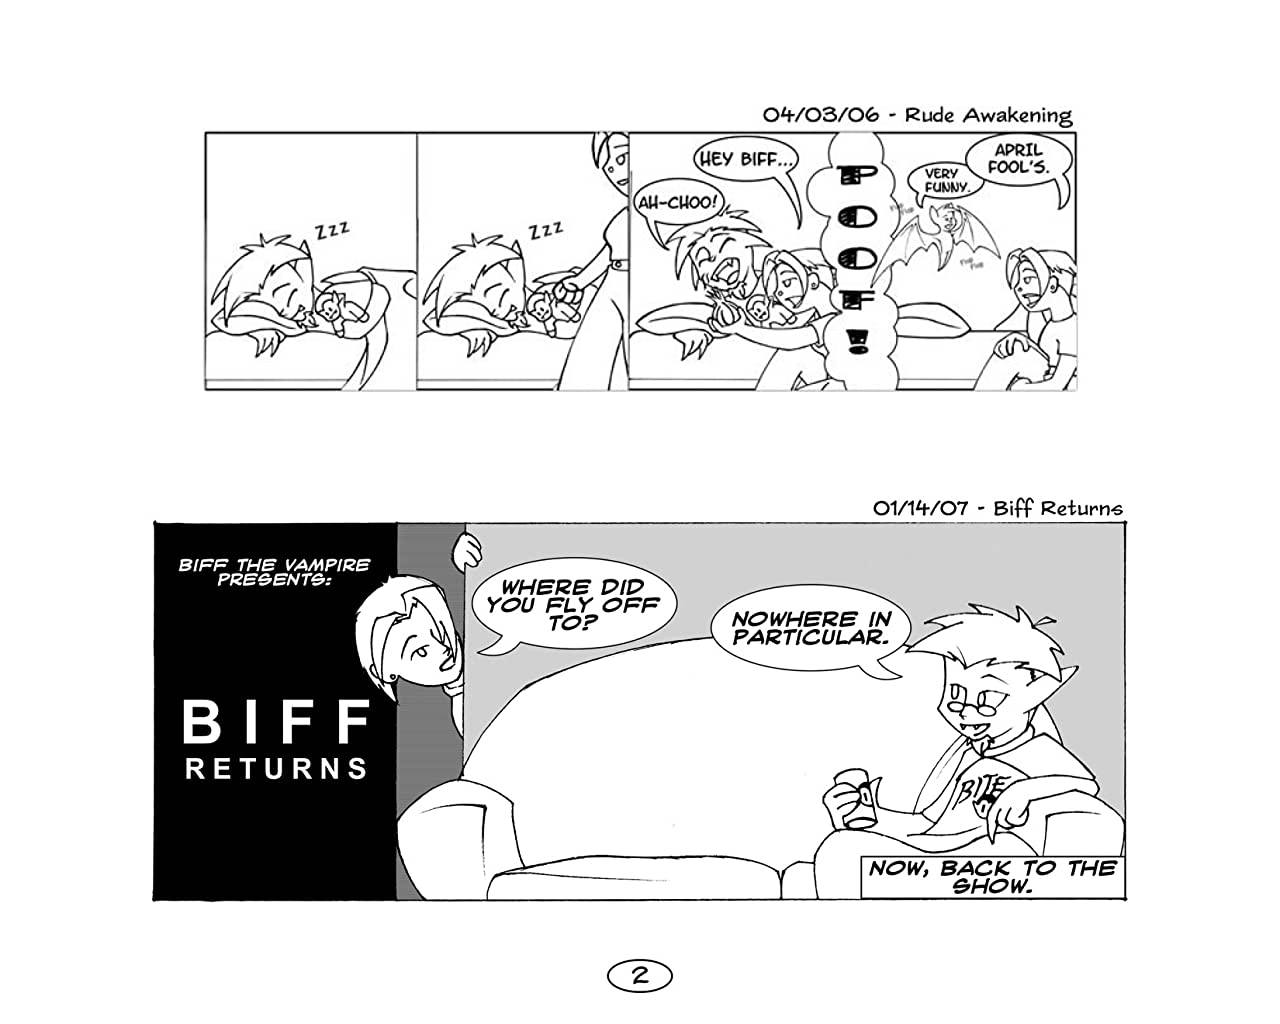 Biff the Vampire Vol. 1: Once Upon a Time in Willimantic...